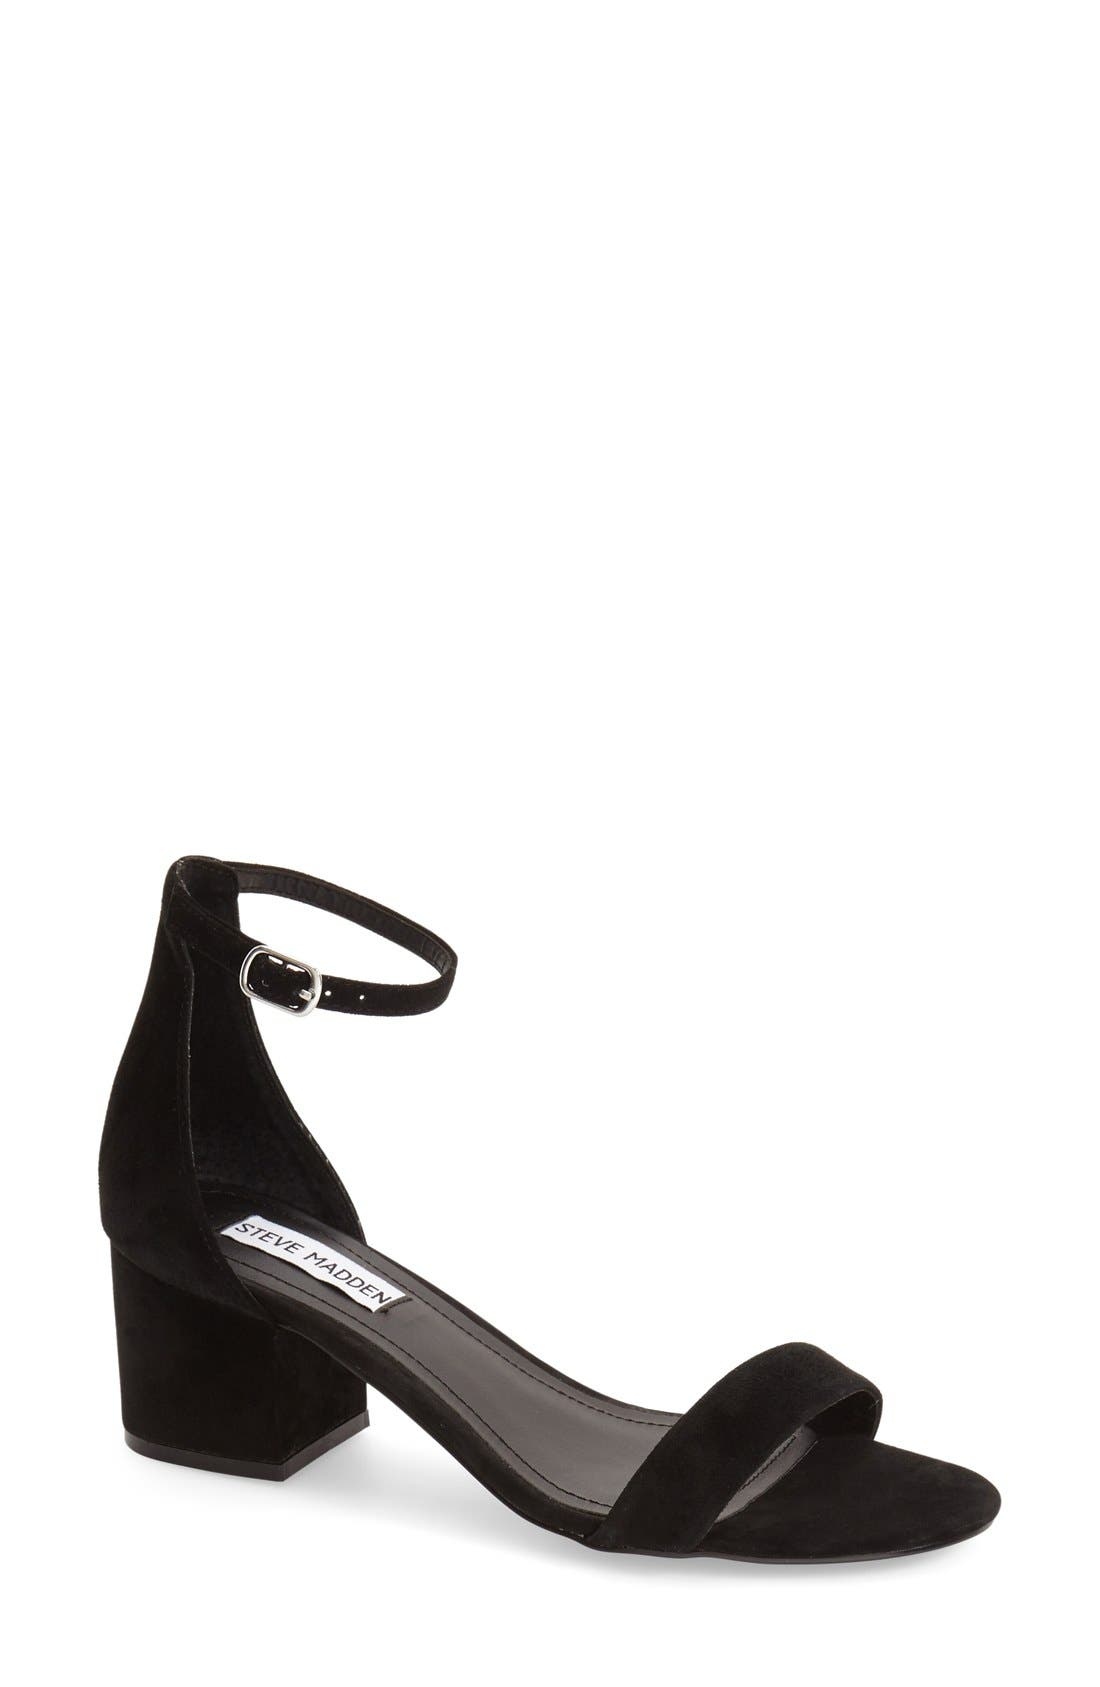 Irenee Ankle Strap Sandal,                             Main thumbnail 1, color,                             BLACK SUEDE